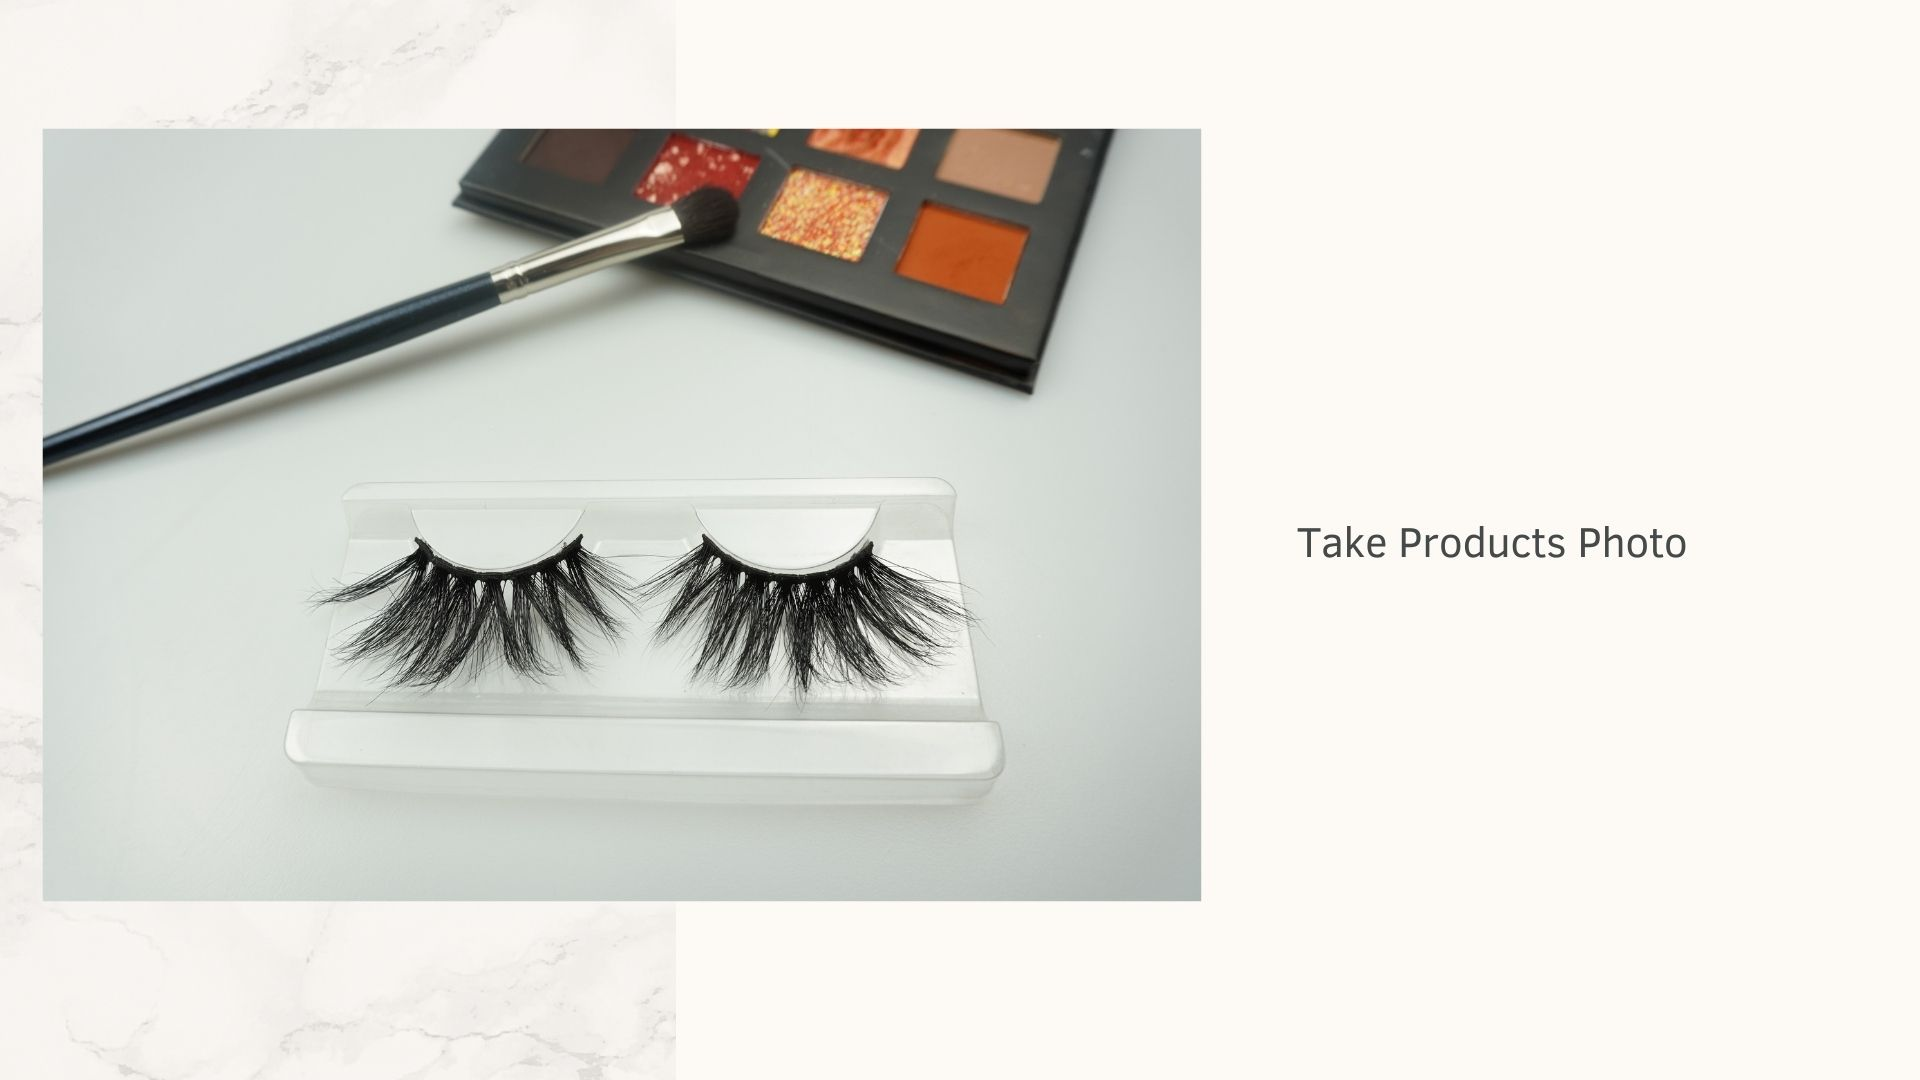 Take Products Photo